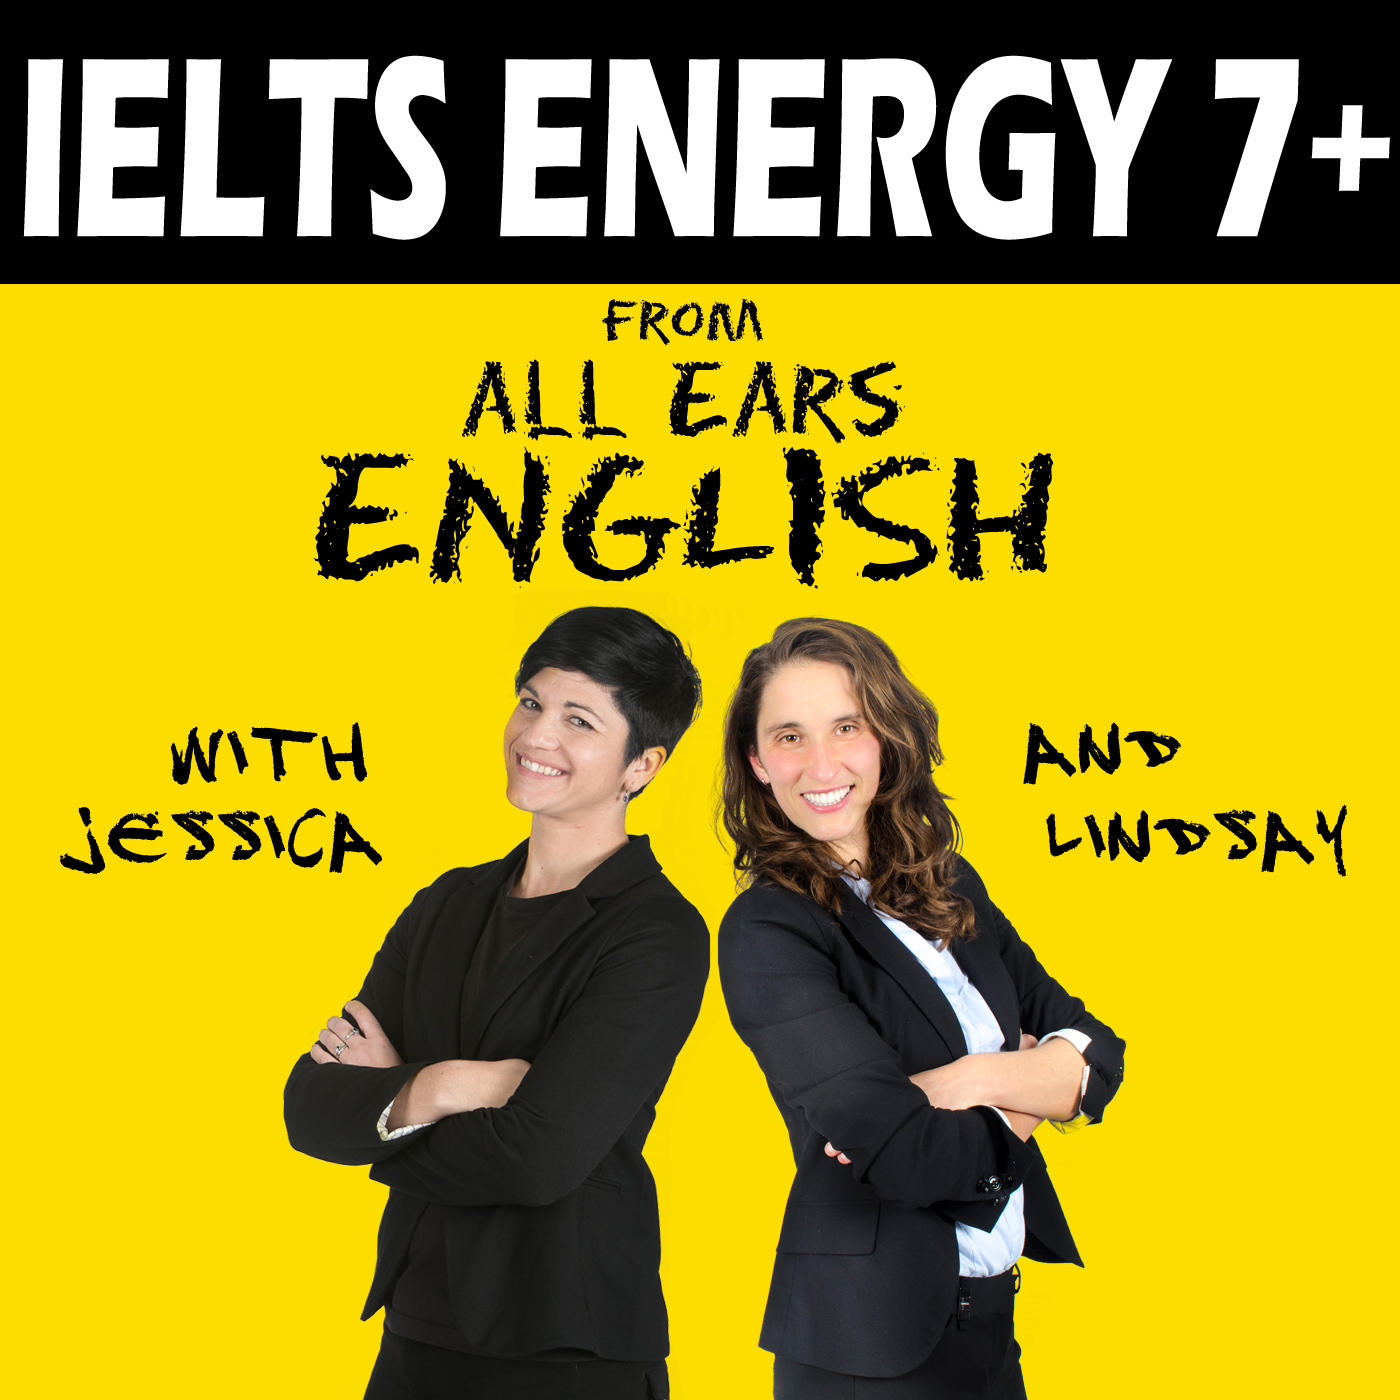 IELTS Energy 881: Why Did Jessica Take the IELTS Indicator Test?